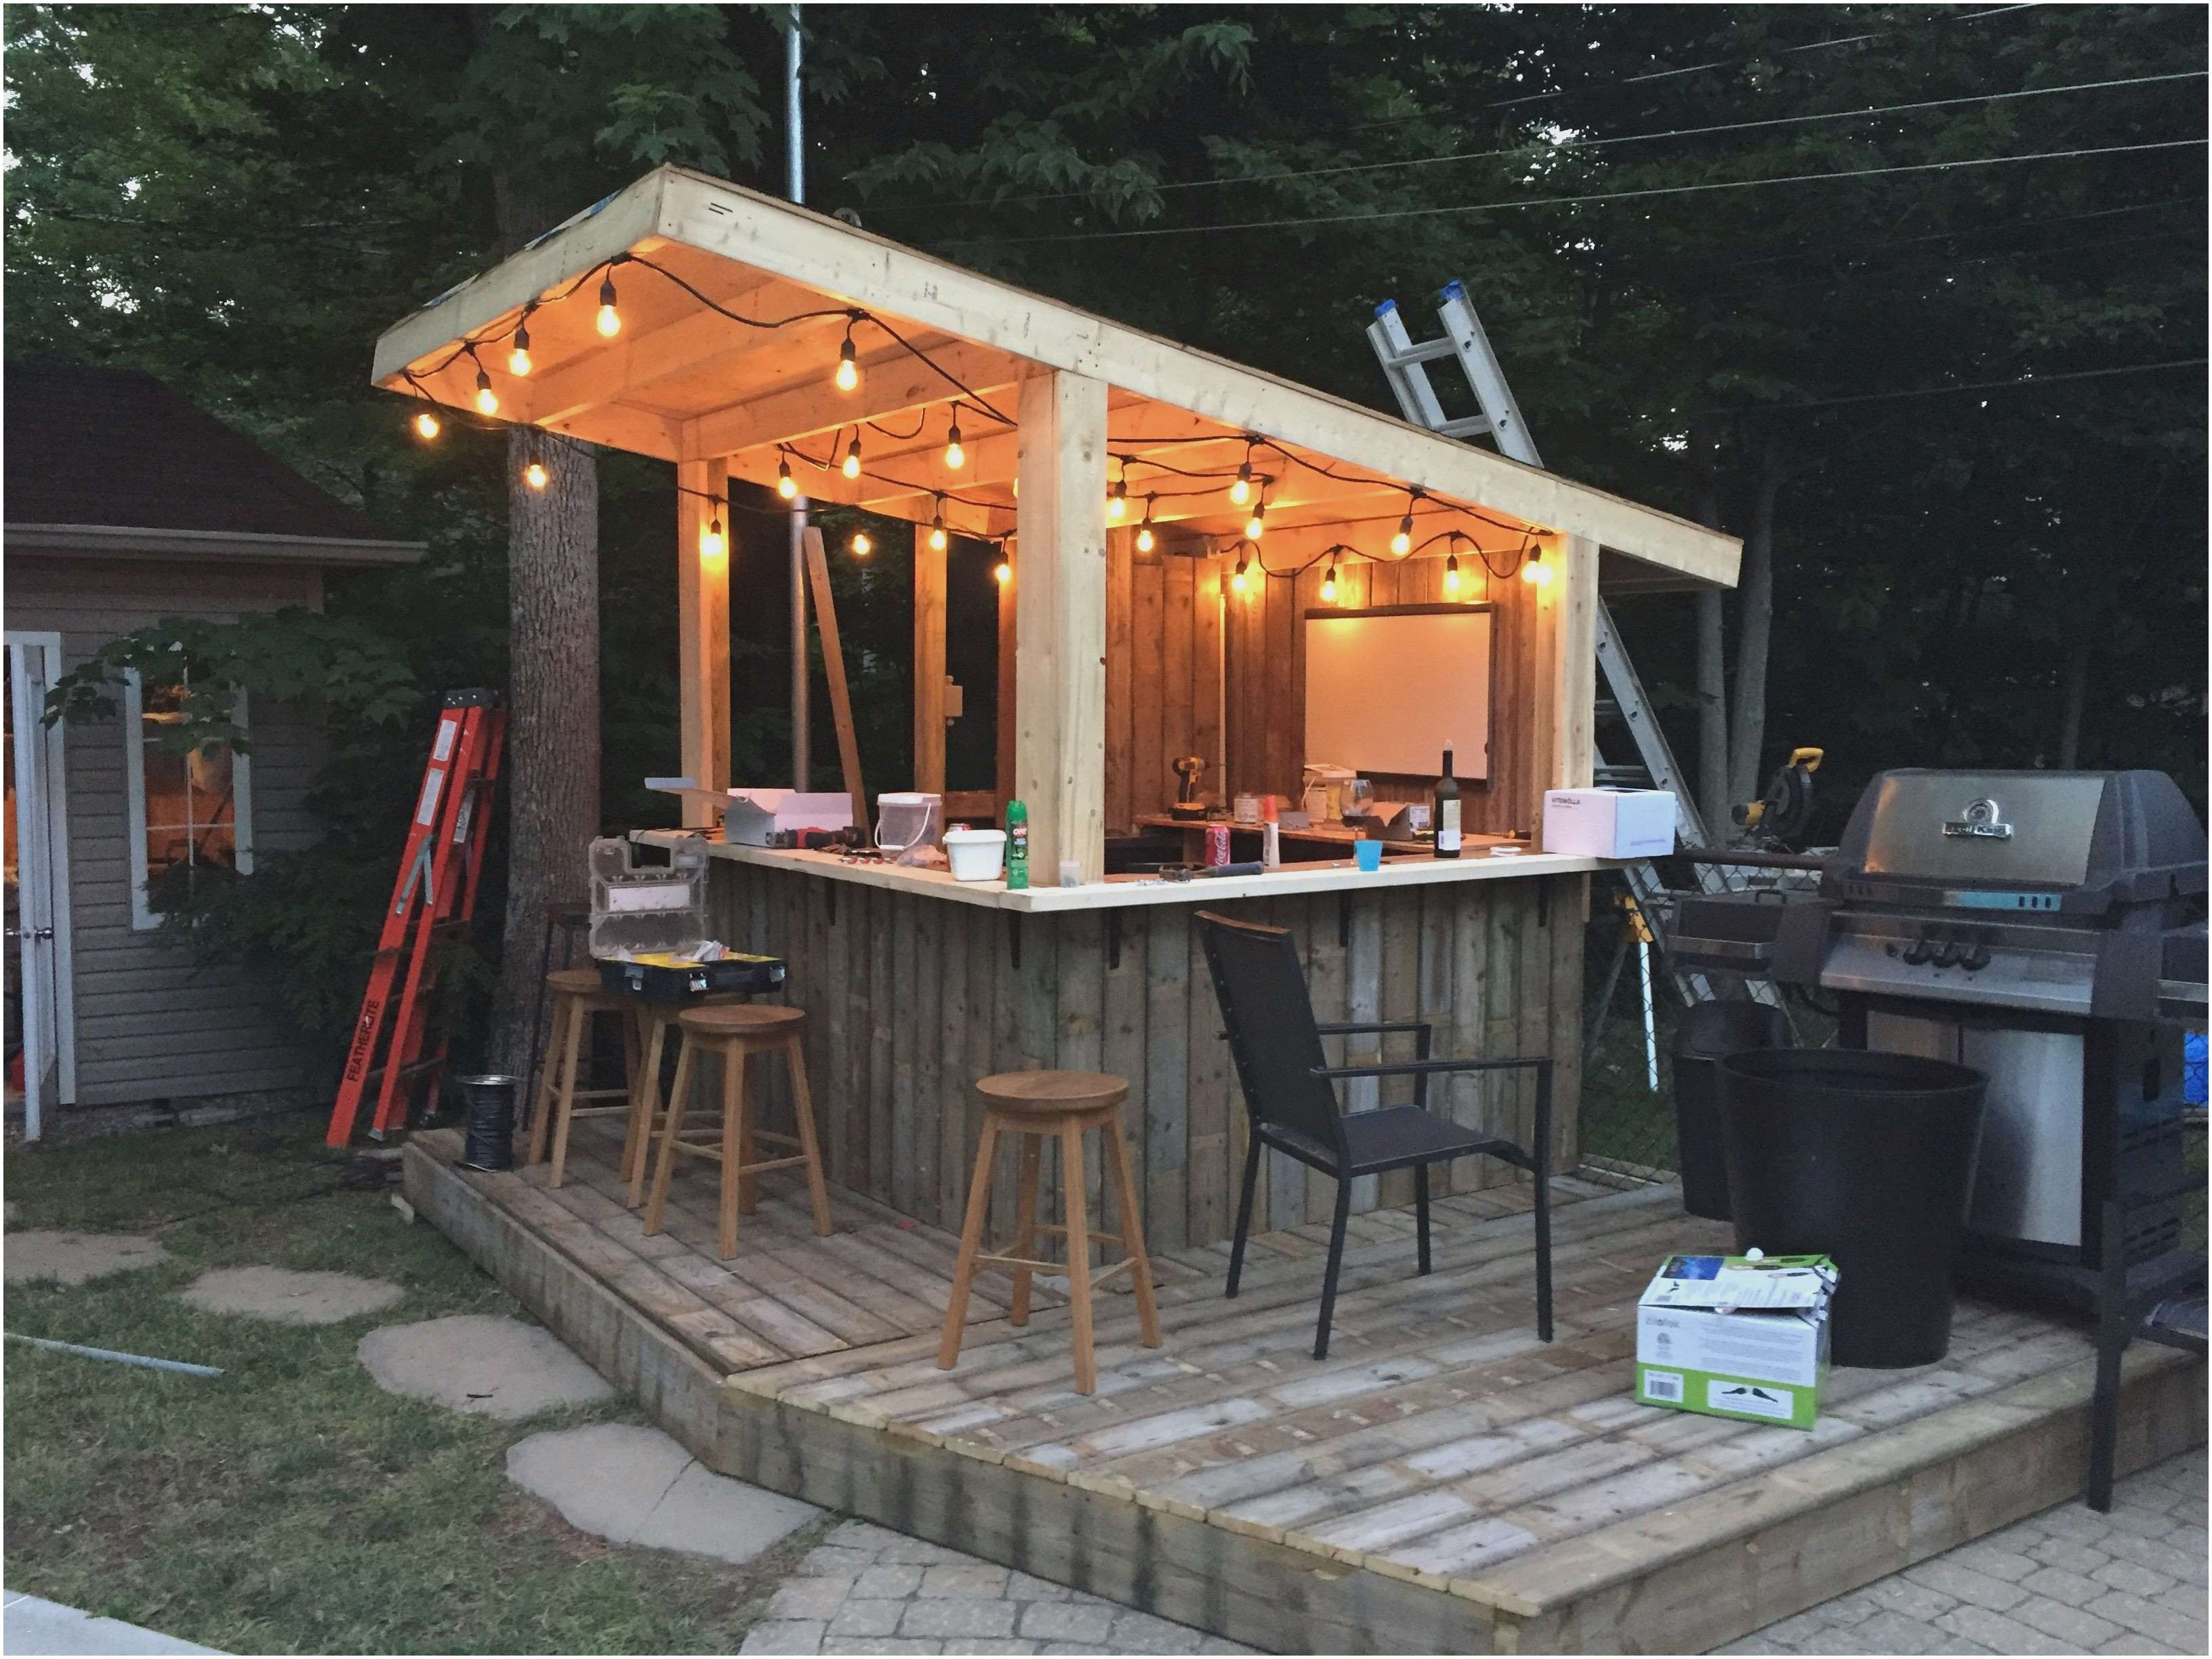 Backyard Bar Ideas And Grill Picking Out Patio Elegant for Backyard Bar And Grill Ideas